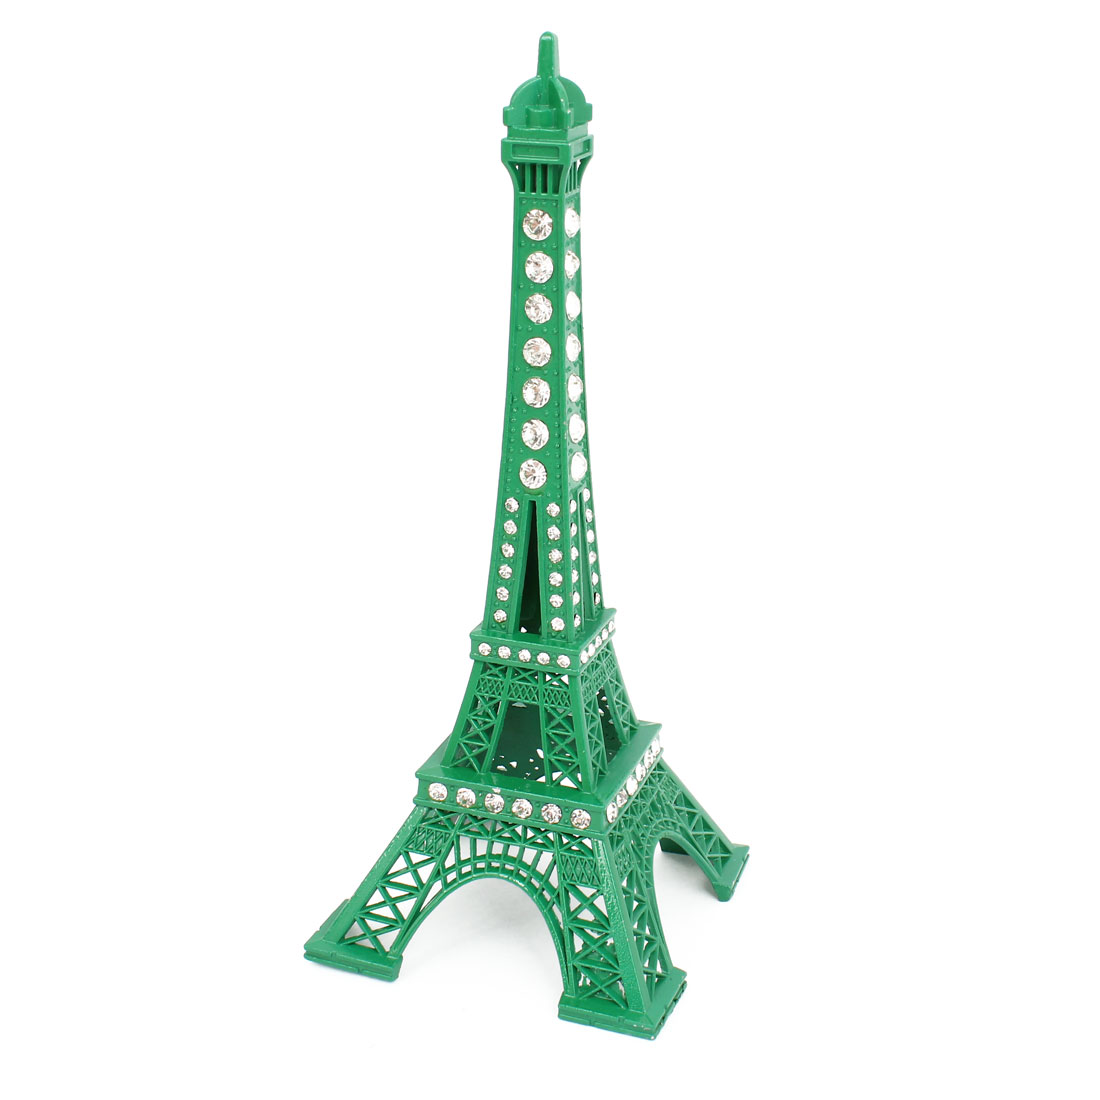 Rhinestone Green Paris Eiffel Tower Figurine Sculpture Model Home Ornament Gift